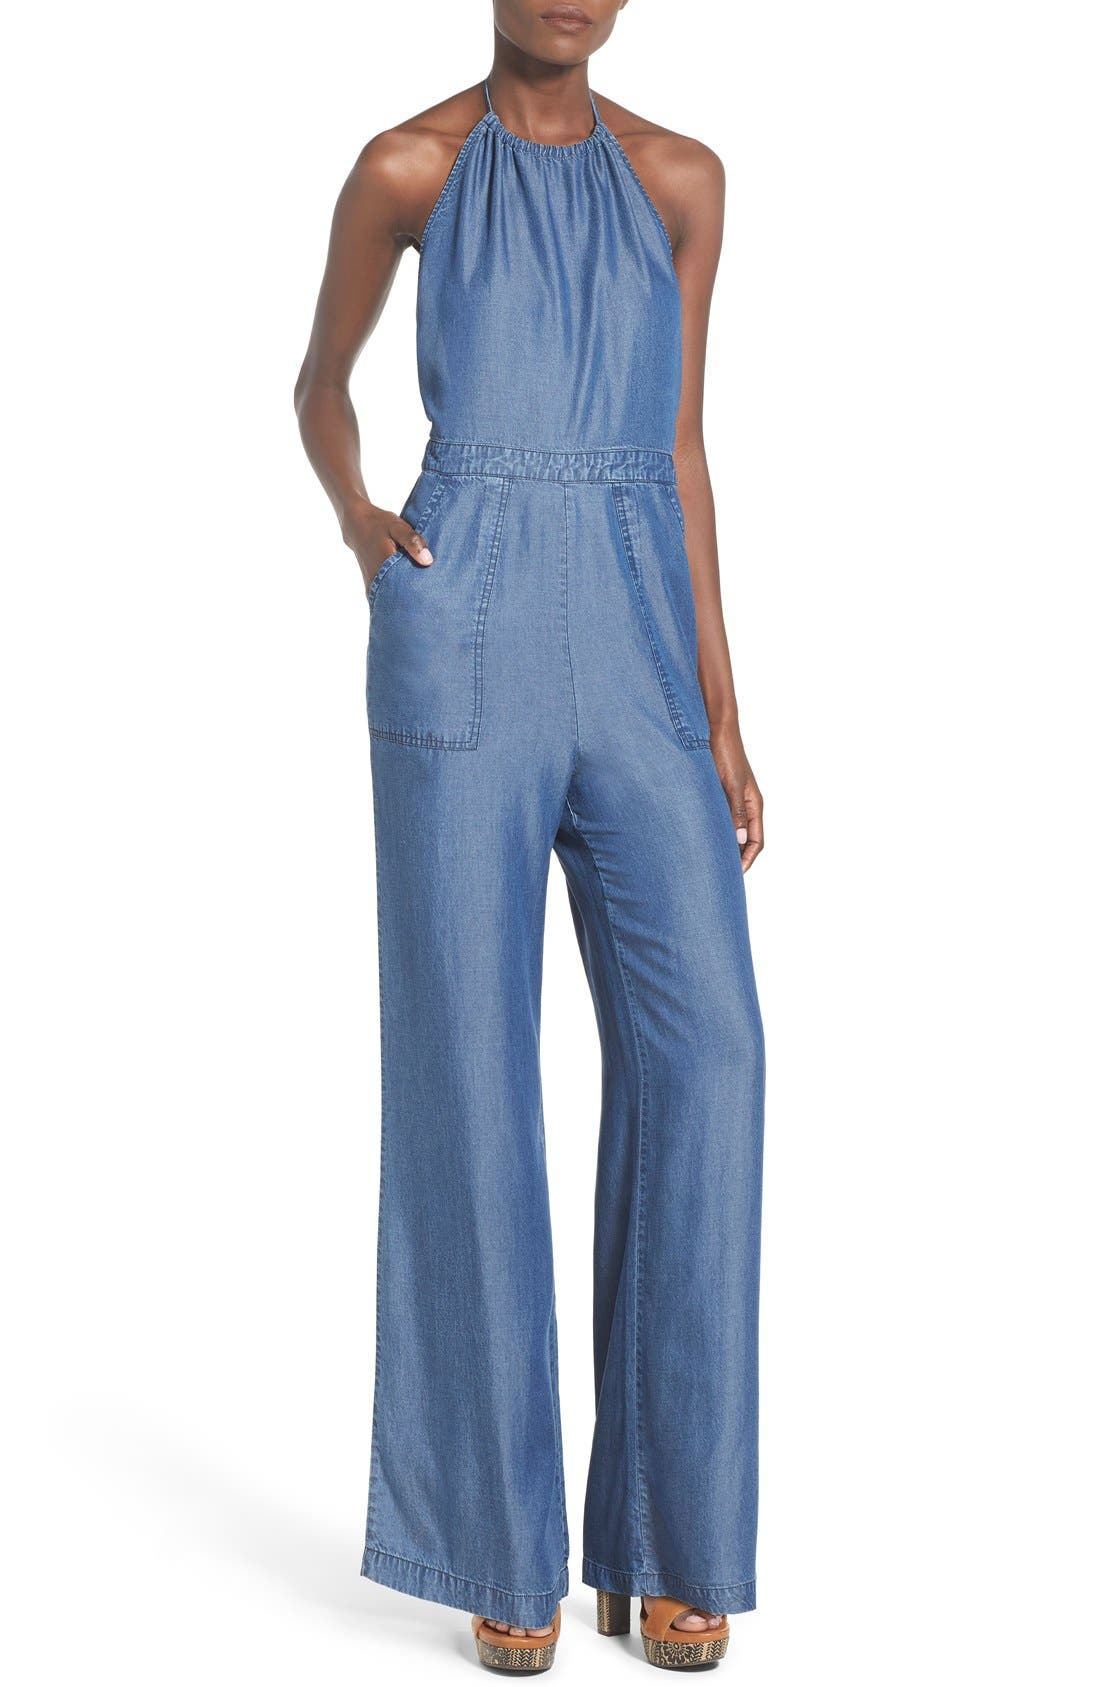 Alternate Image 1 Selected - ASTR Chambray Halter Jumpsuit